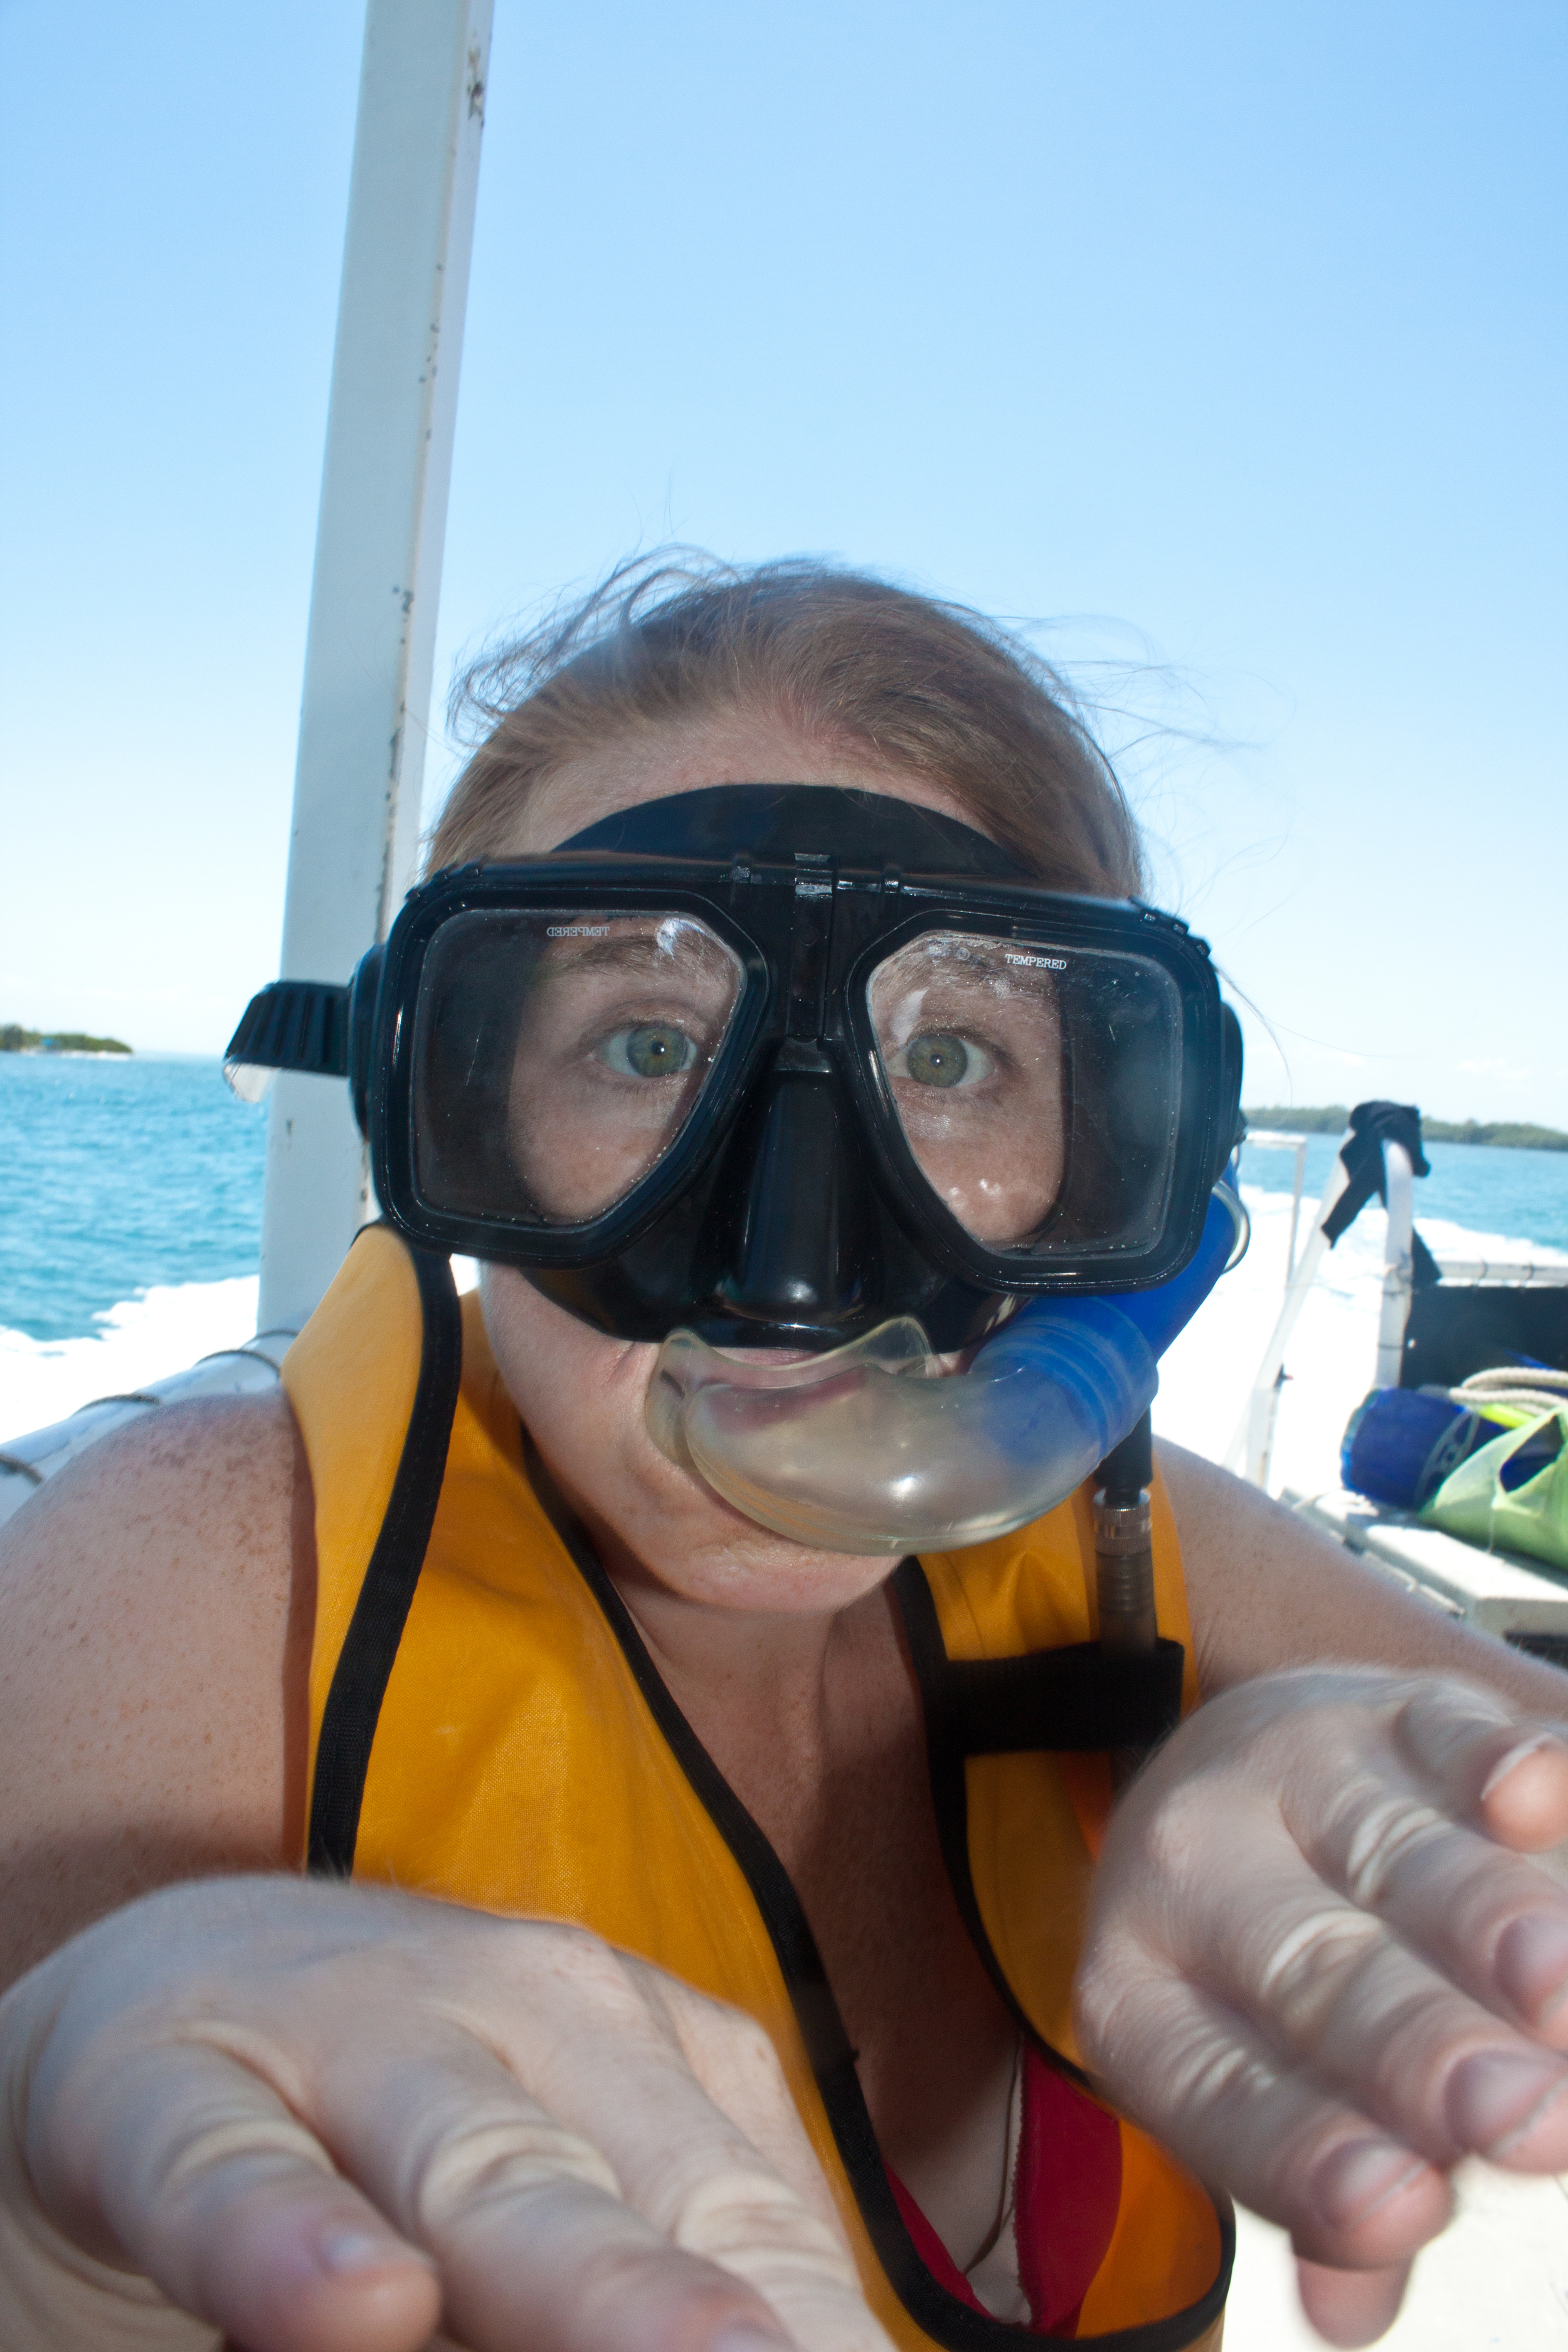 Getting ready to snorkle!